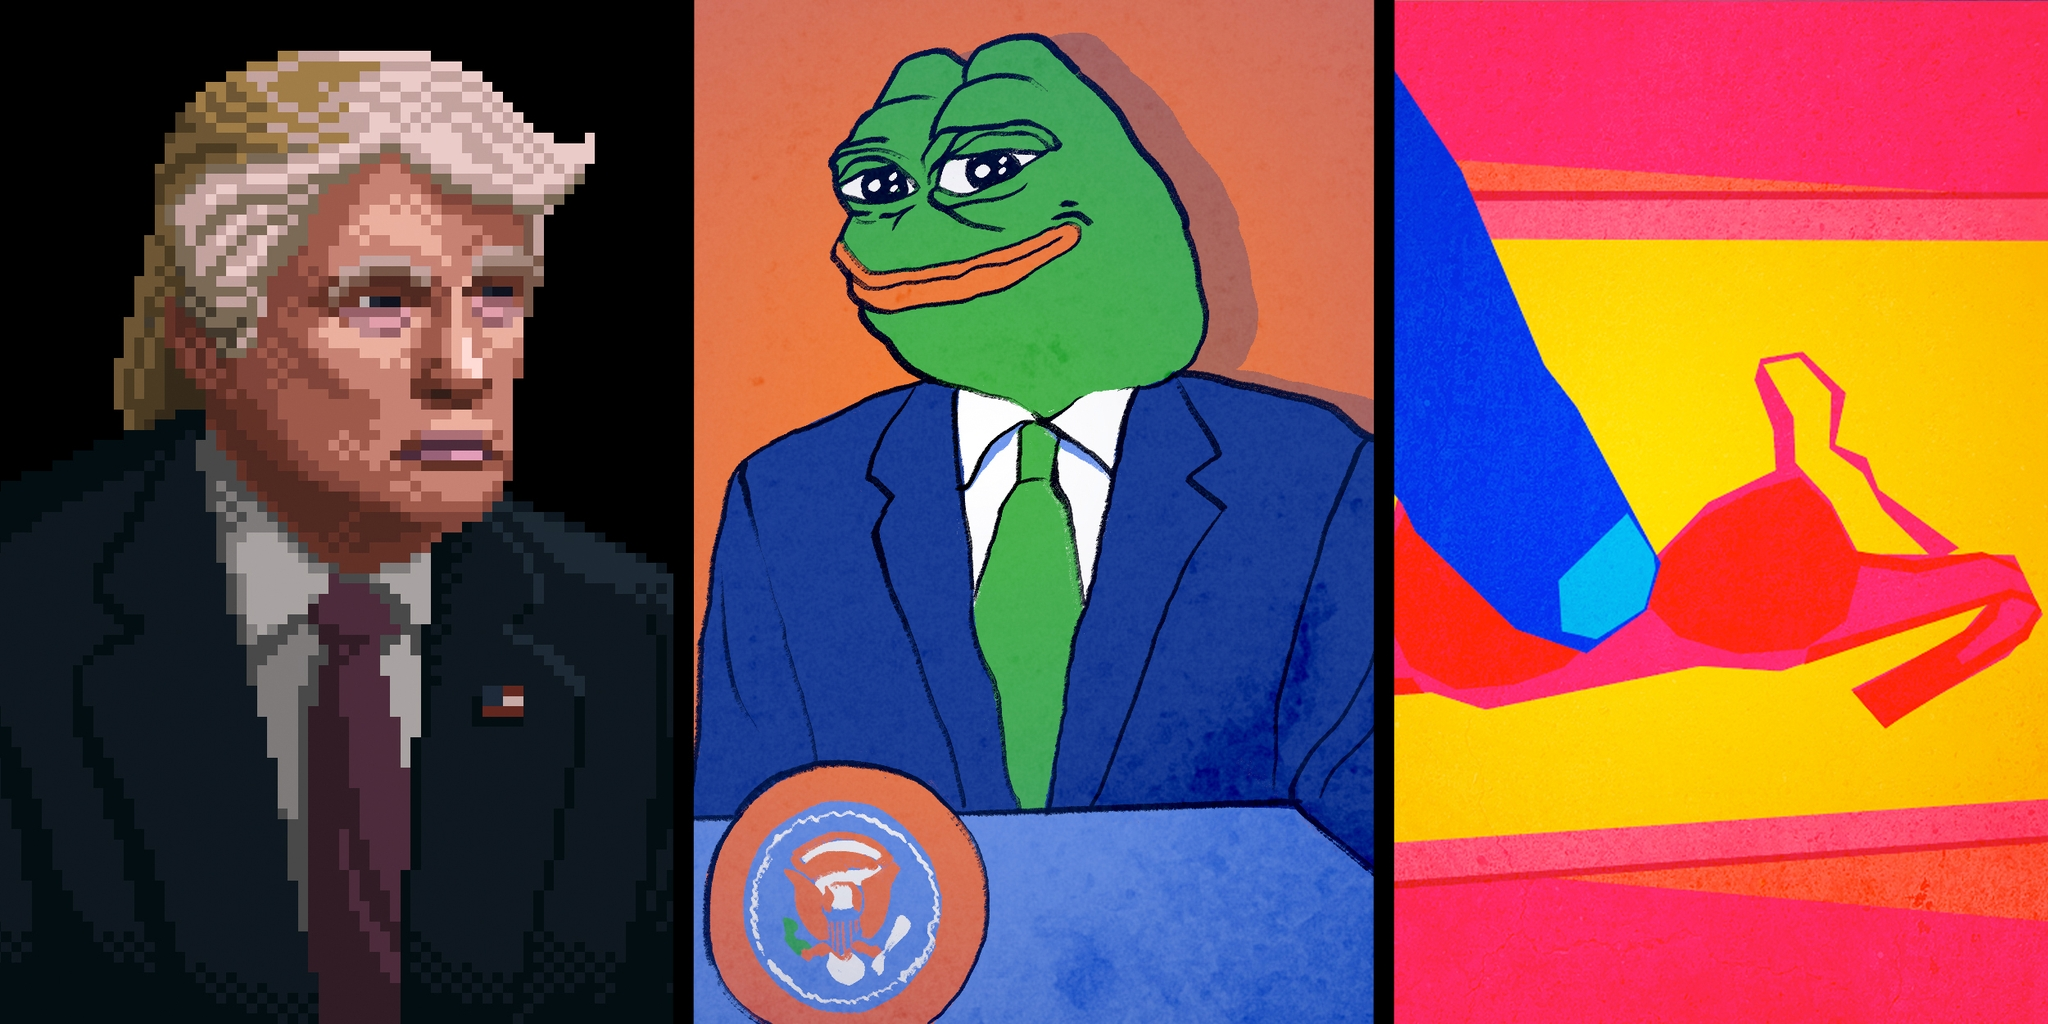 Donald Trump and Pepe Le Frog